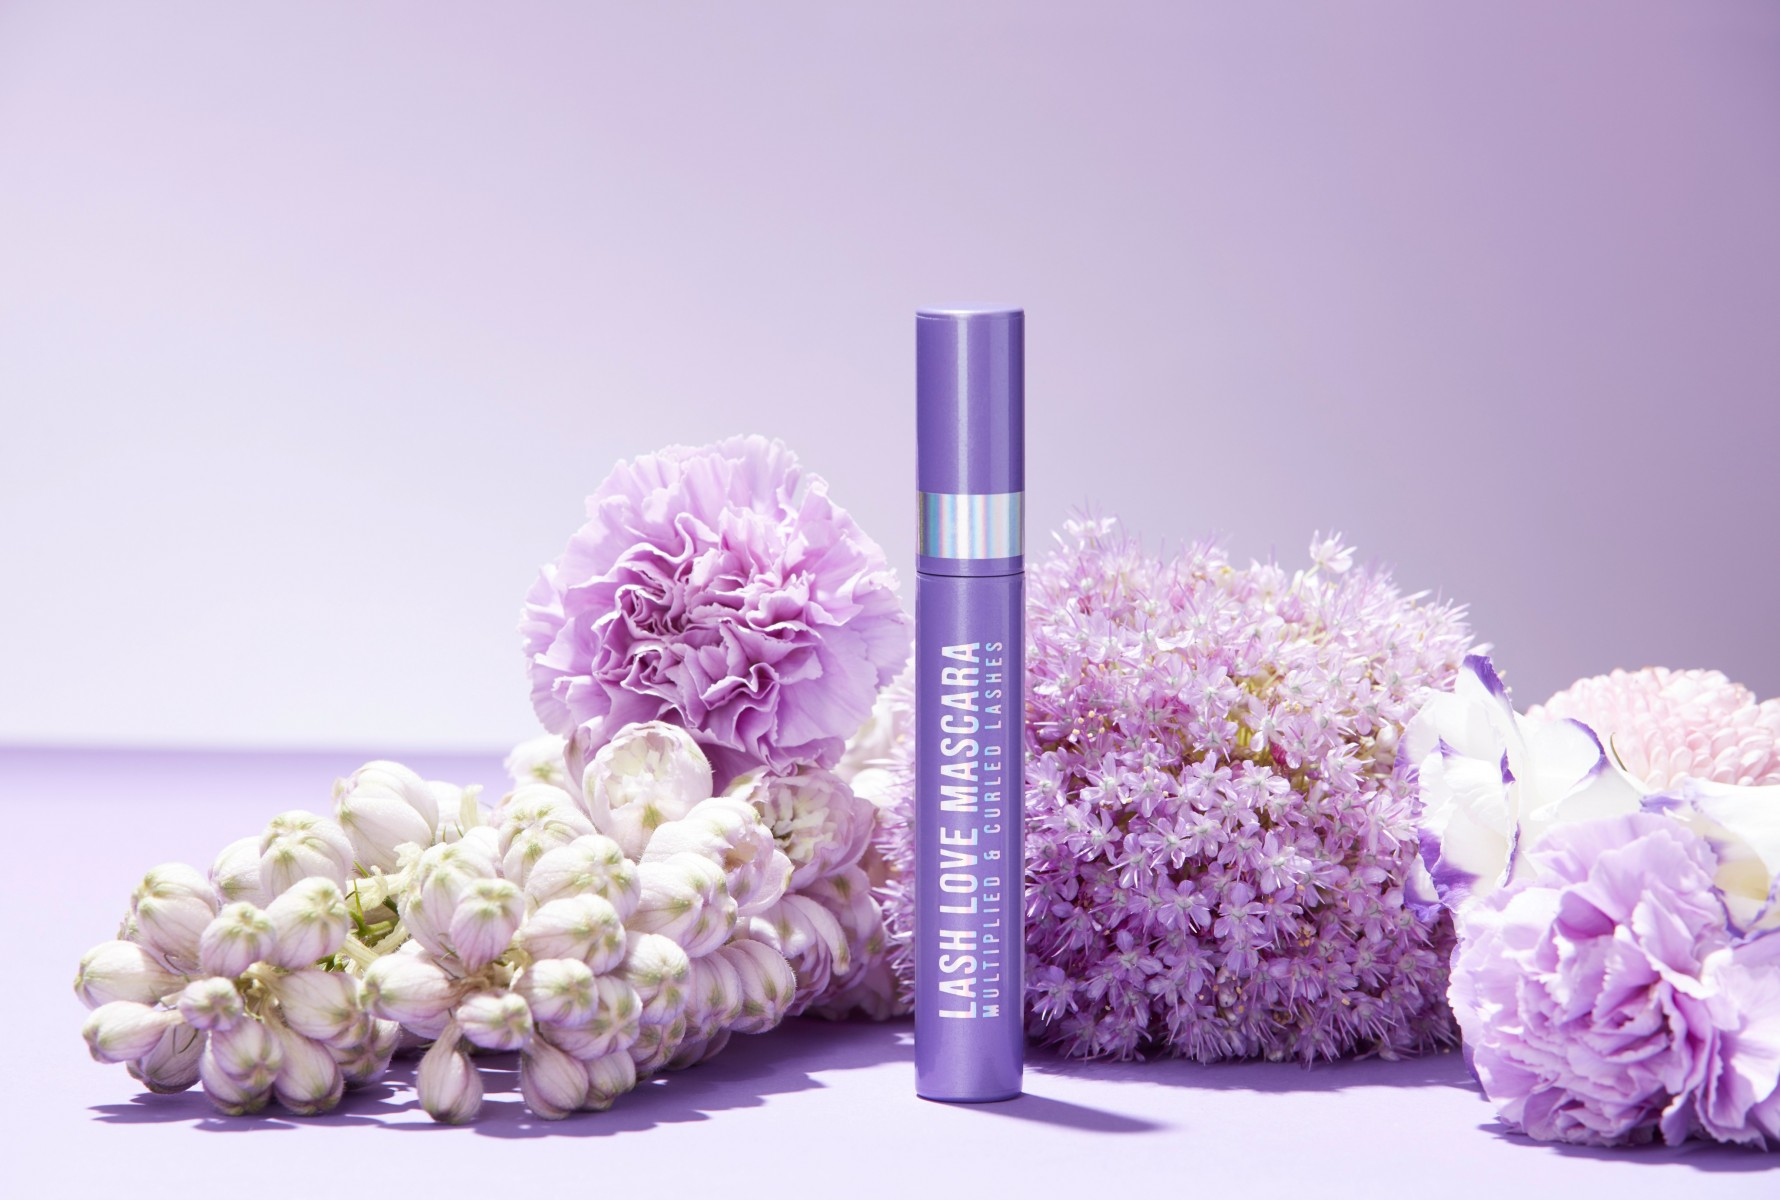 Douglas-collection-makeup-eyes-mascara-lash-love-lash-love-mascara-toolbox-2020-flowers-in-background-product-still - Web Rendition